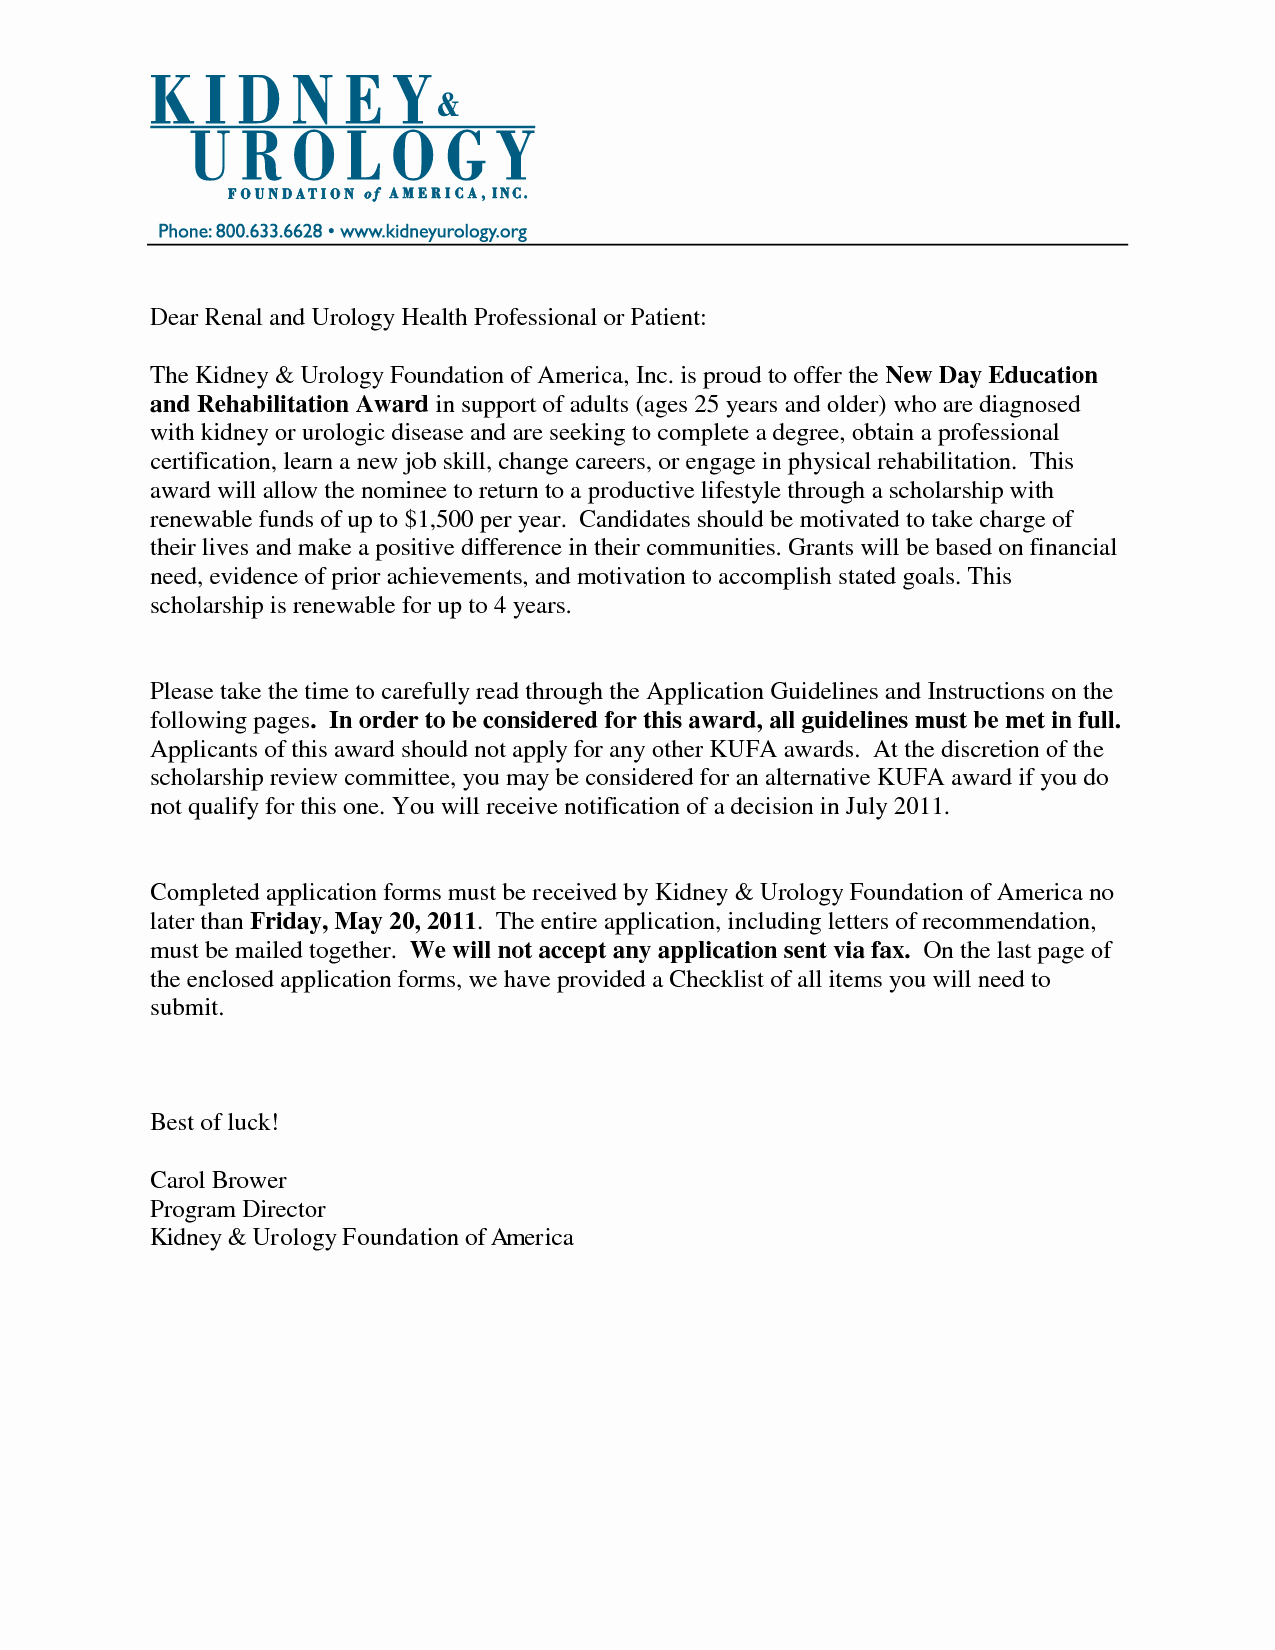 Recommendation Letter for Nursing School Beautiful Reference Letters for Job Applicants